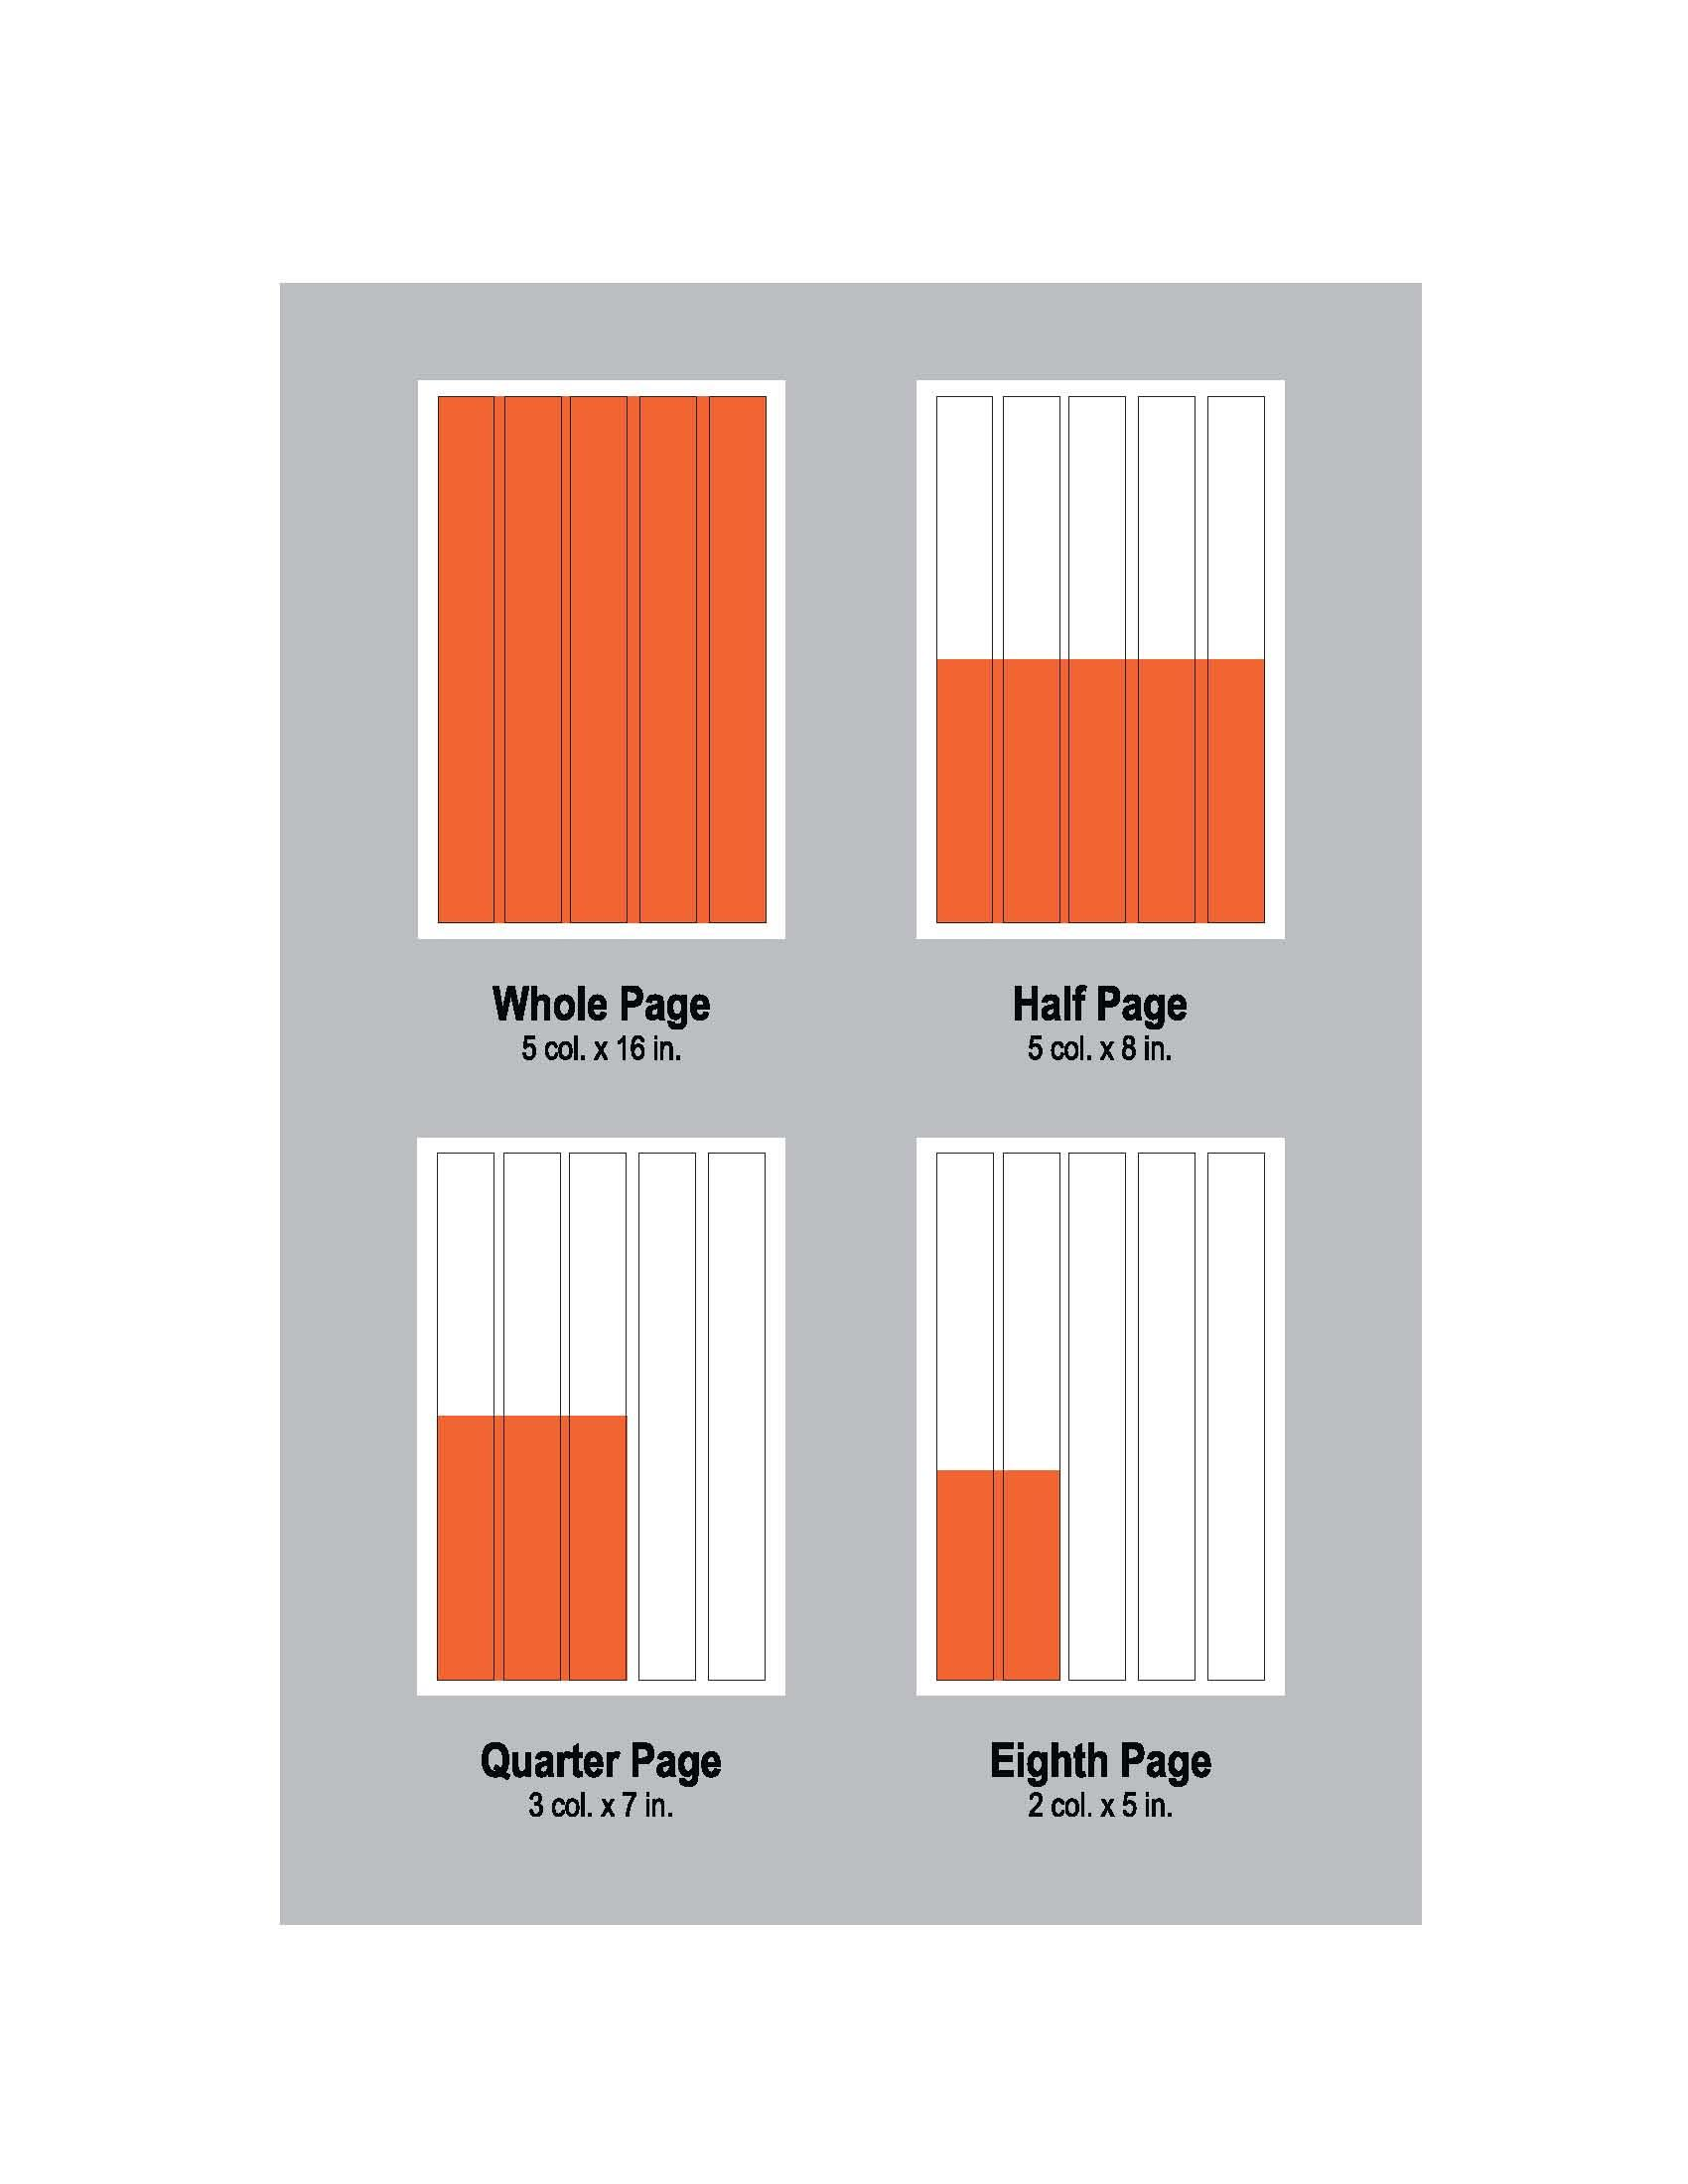 Typical Newspaper Ad Sizes Common Sizes